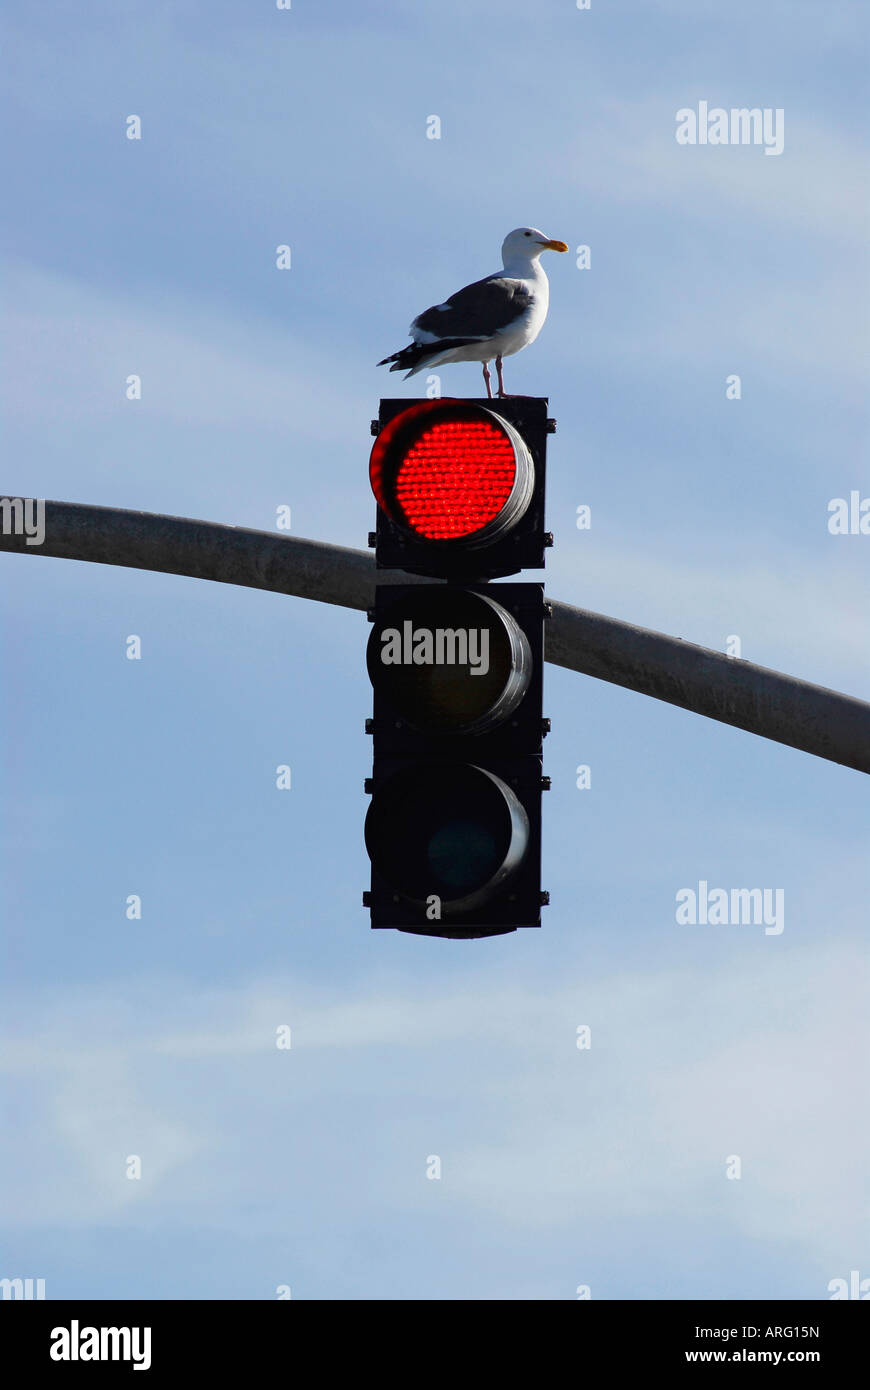 'seagull perched on stoplight' - Stock Image